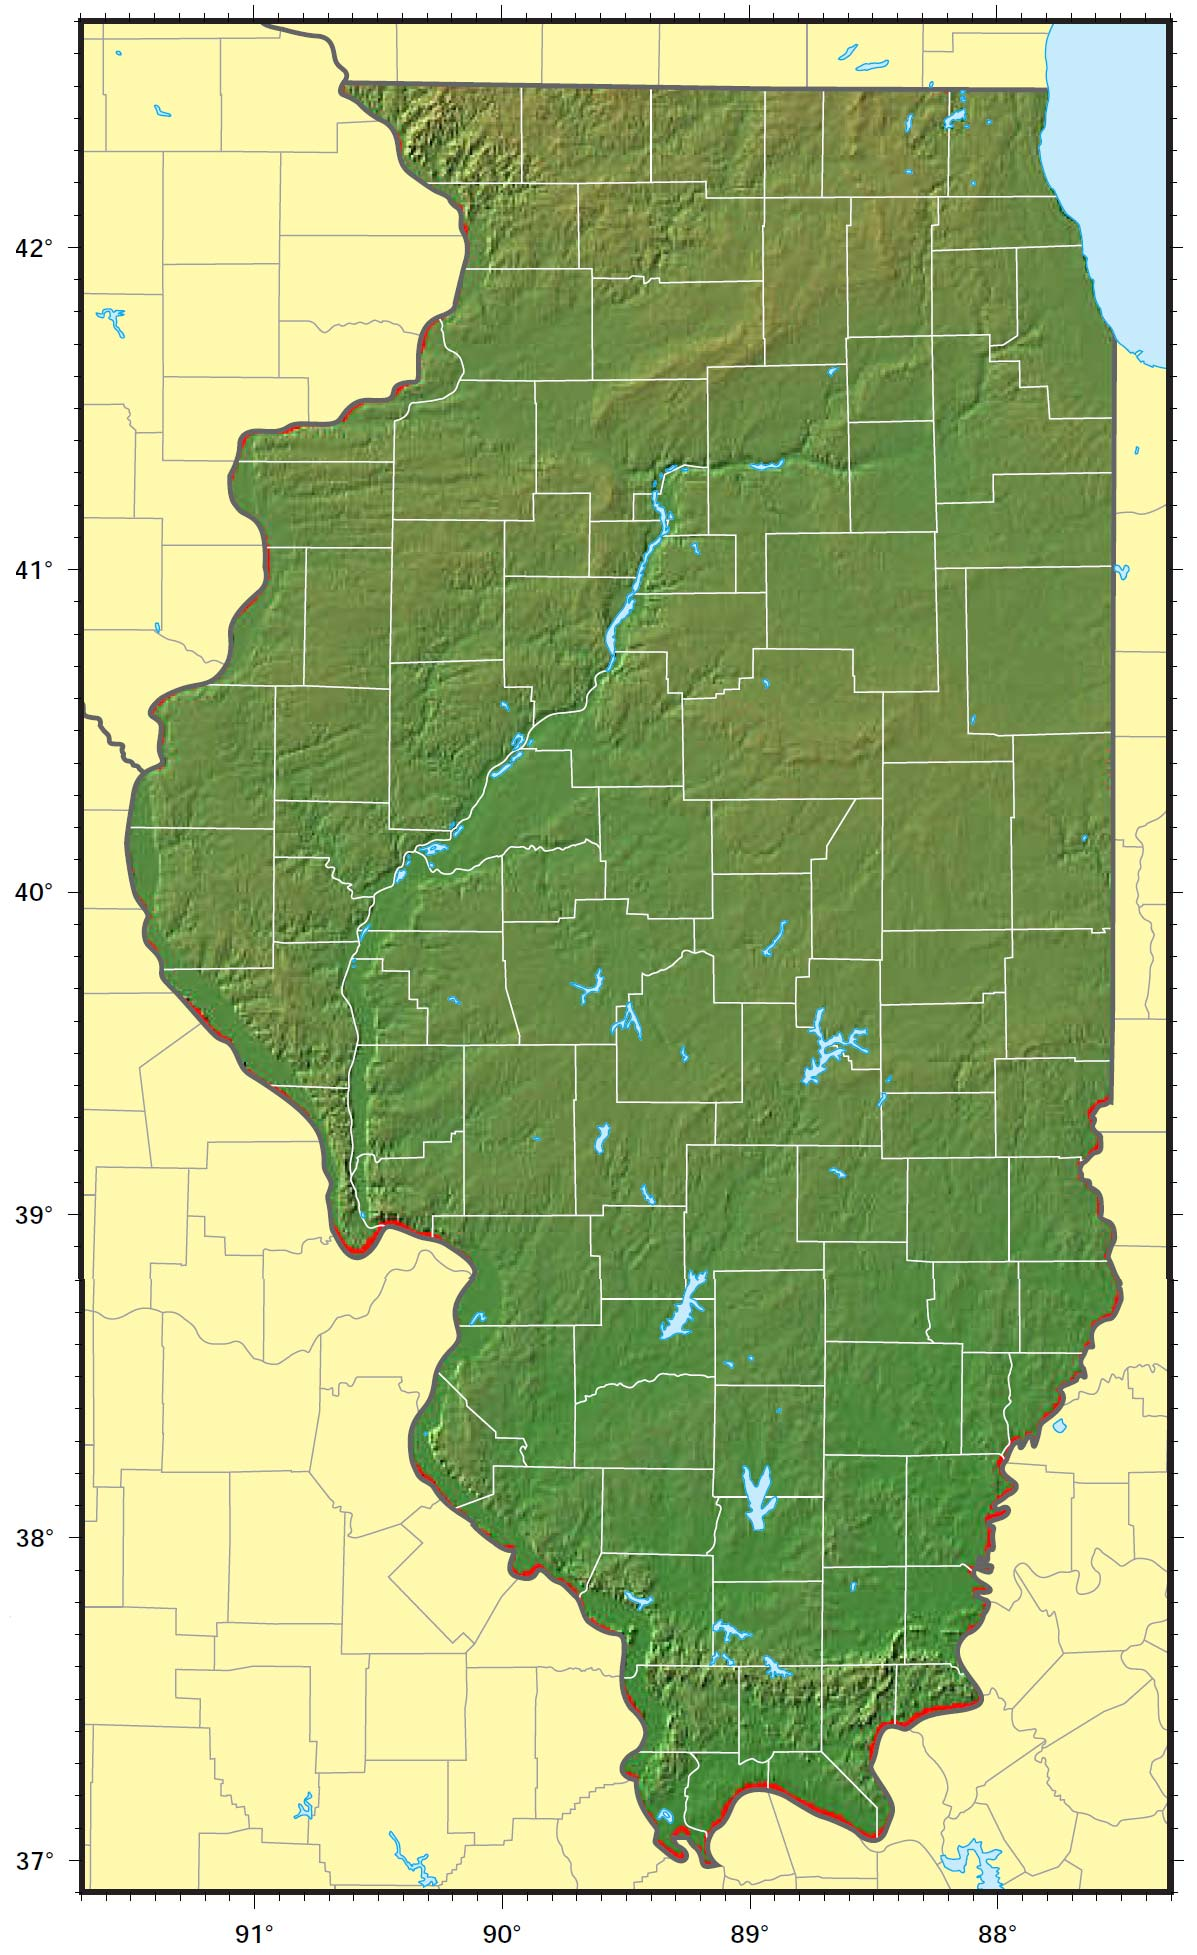 Illinois Districting